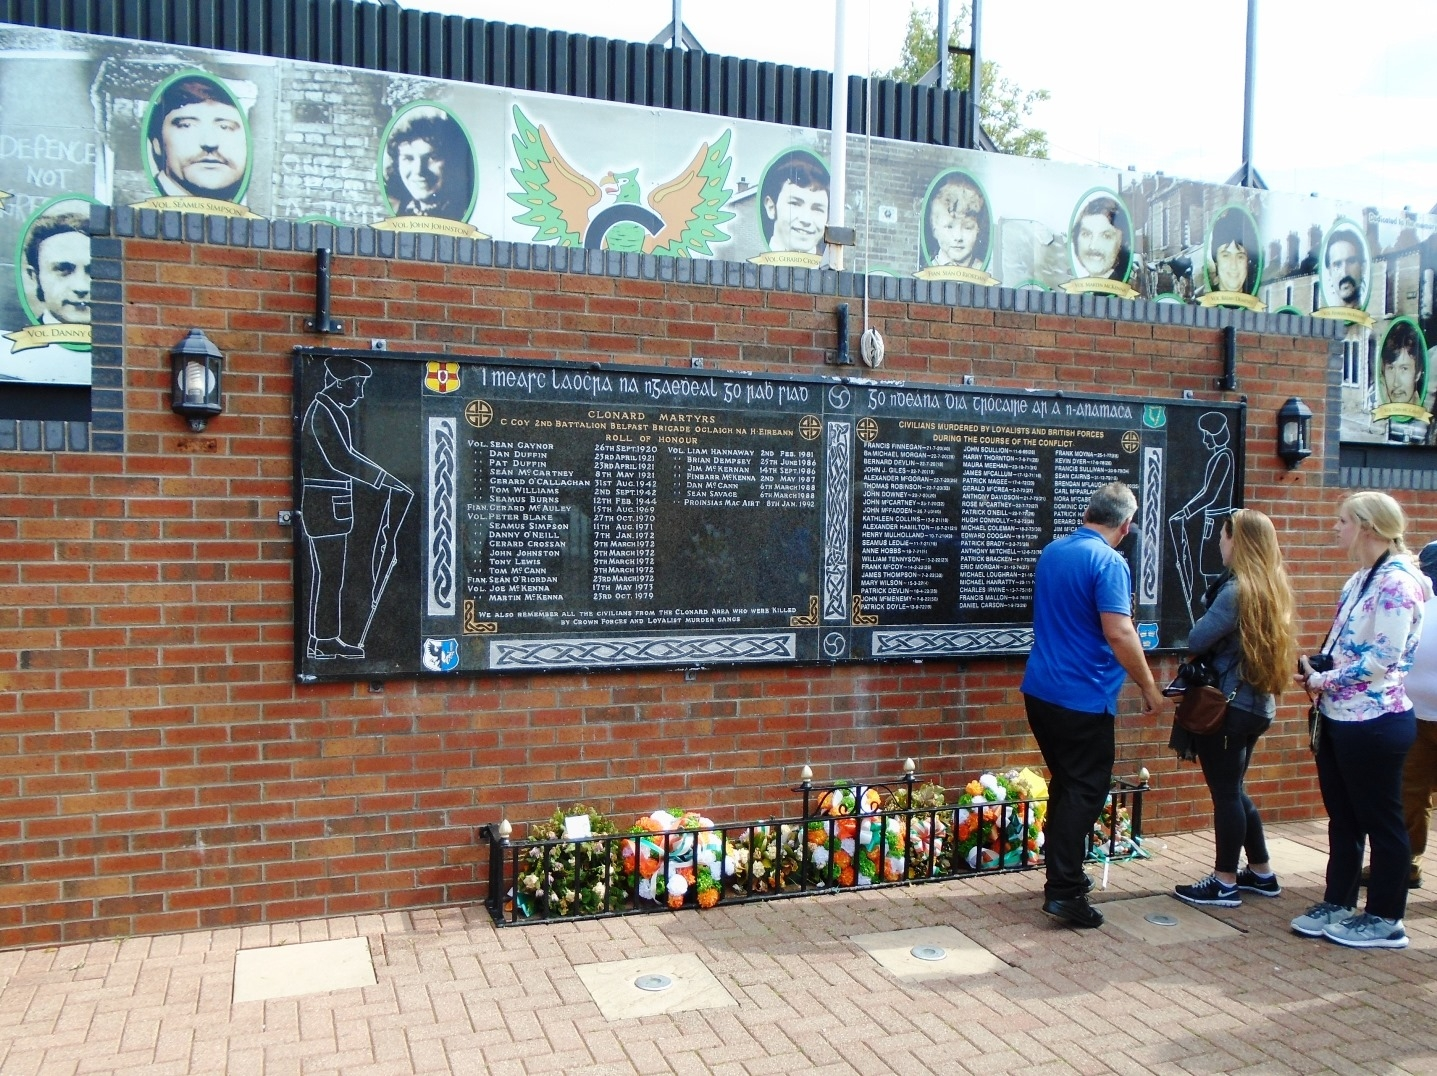 Civilians Murdered by Loyalists and British Forces During the Course of the Conflict Memorial